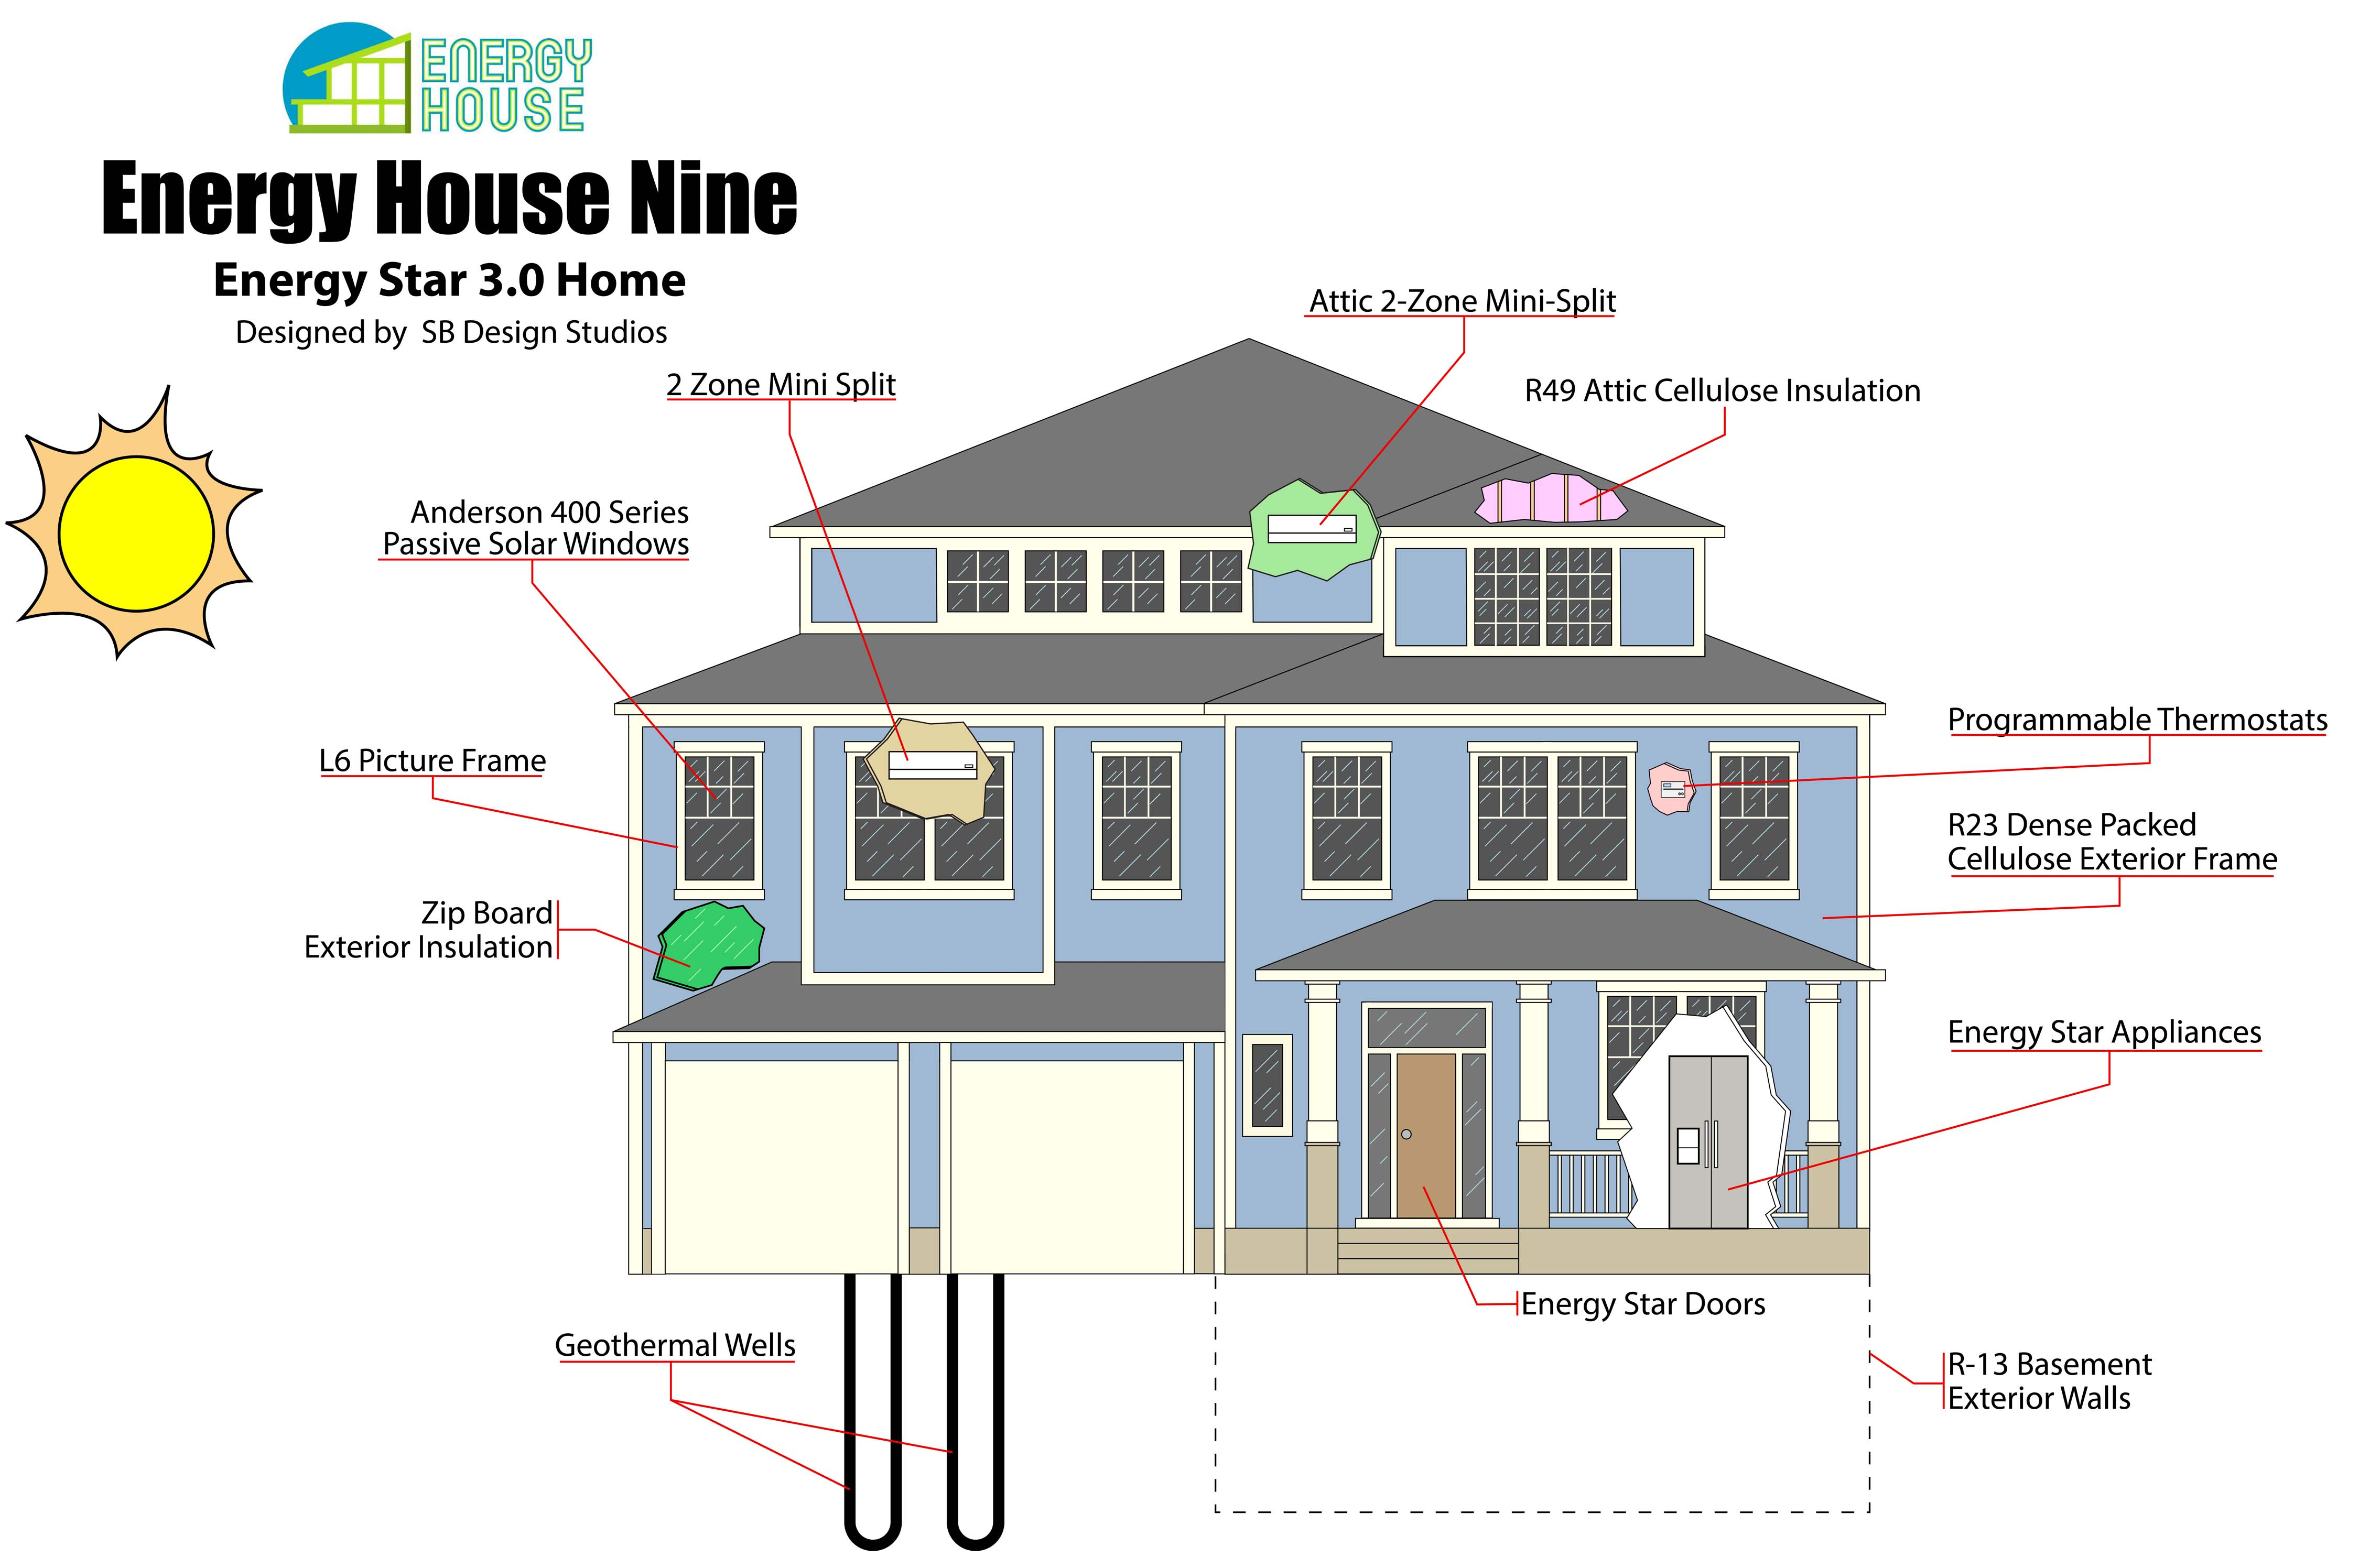 Energy house 9 energy house - House plans for young couples energetic designs ...